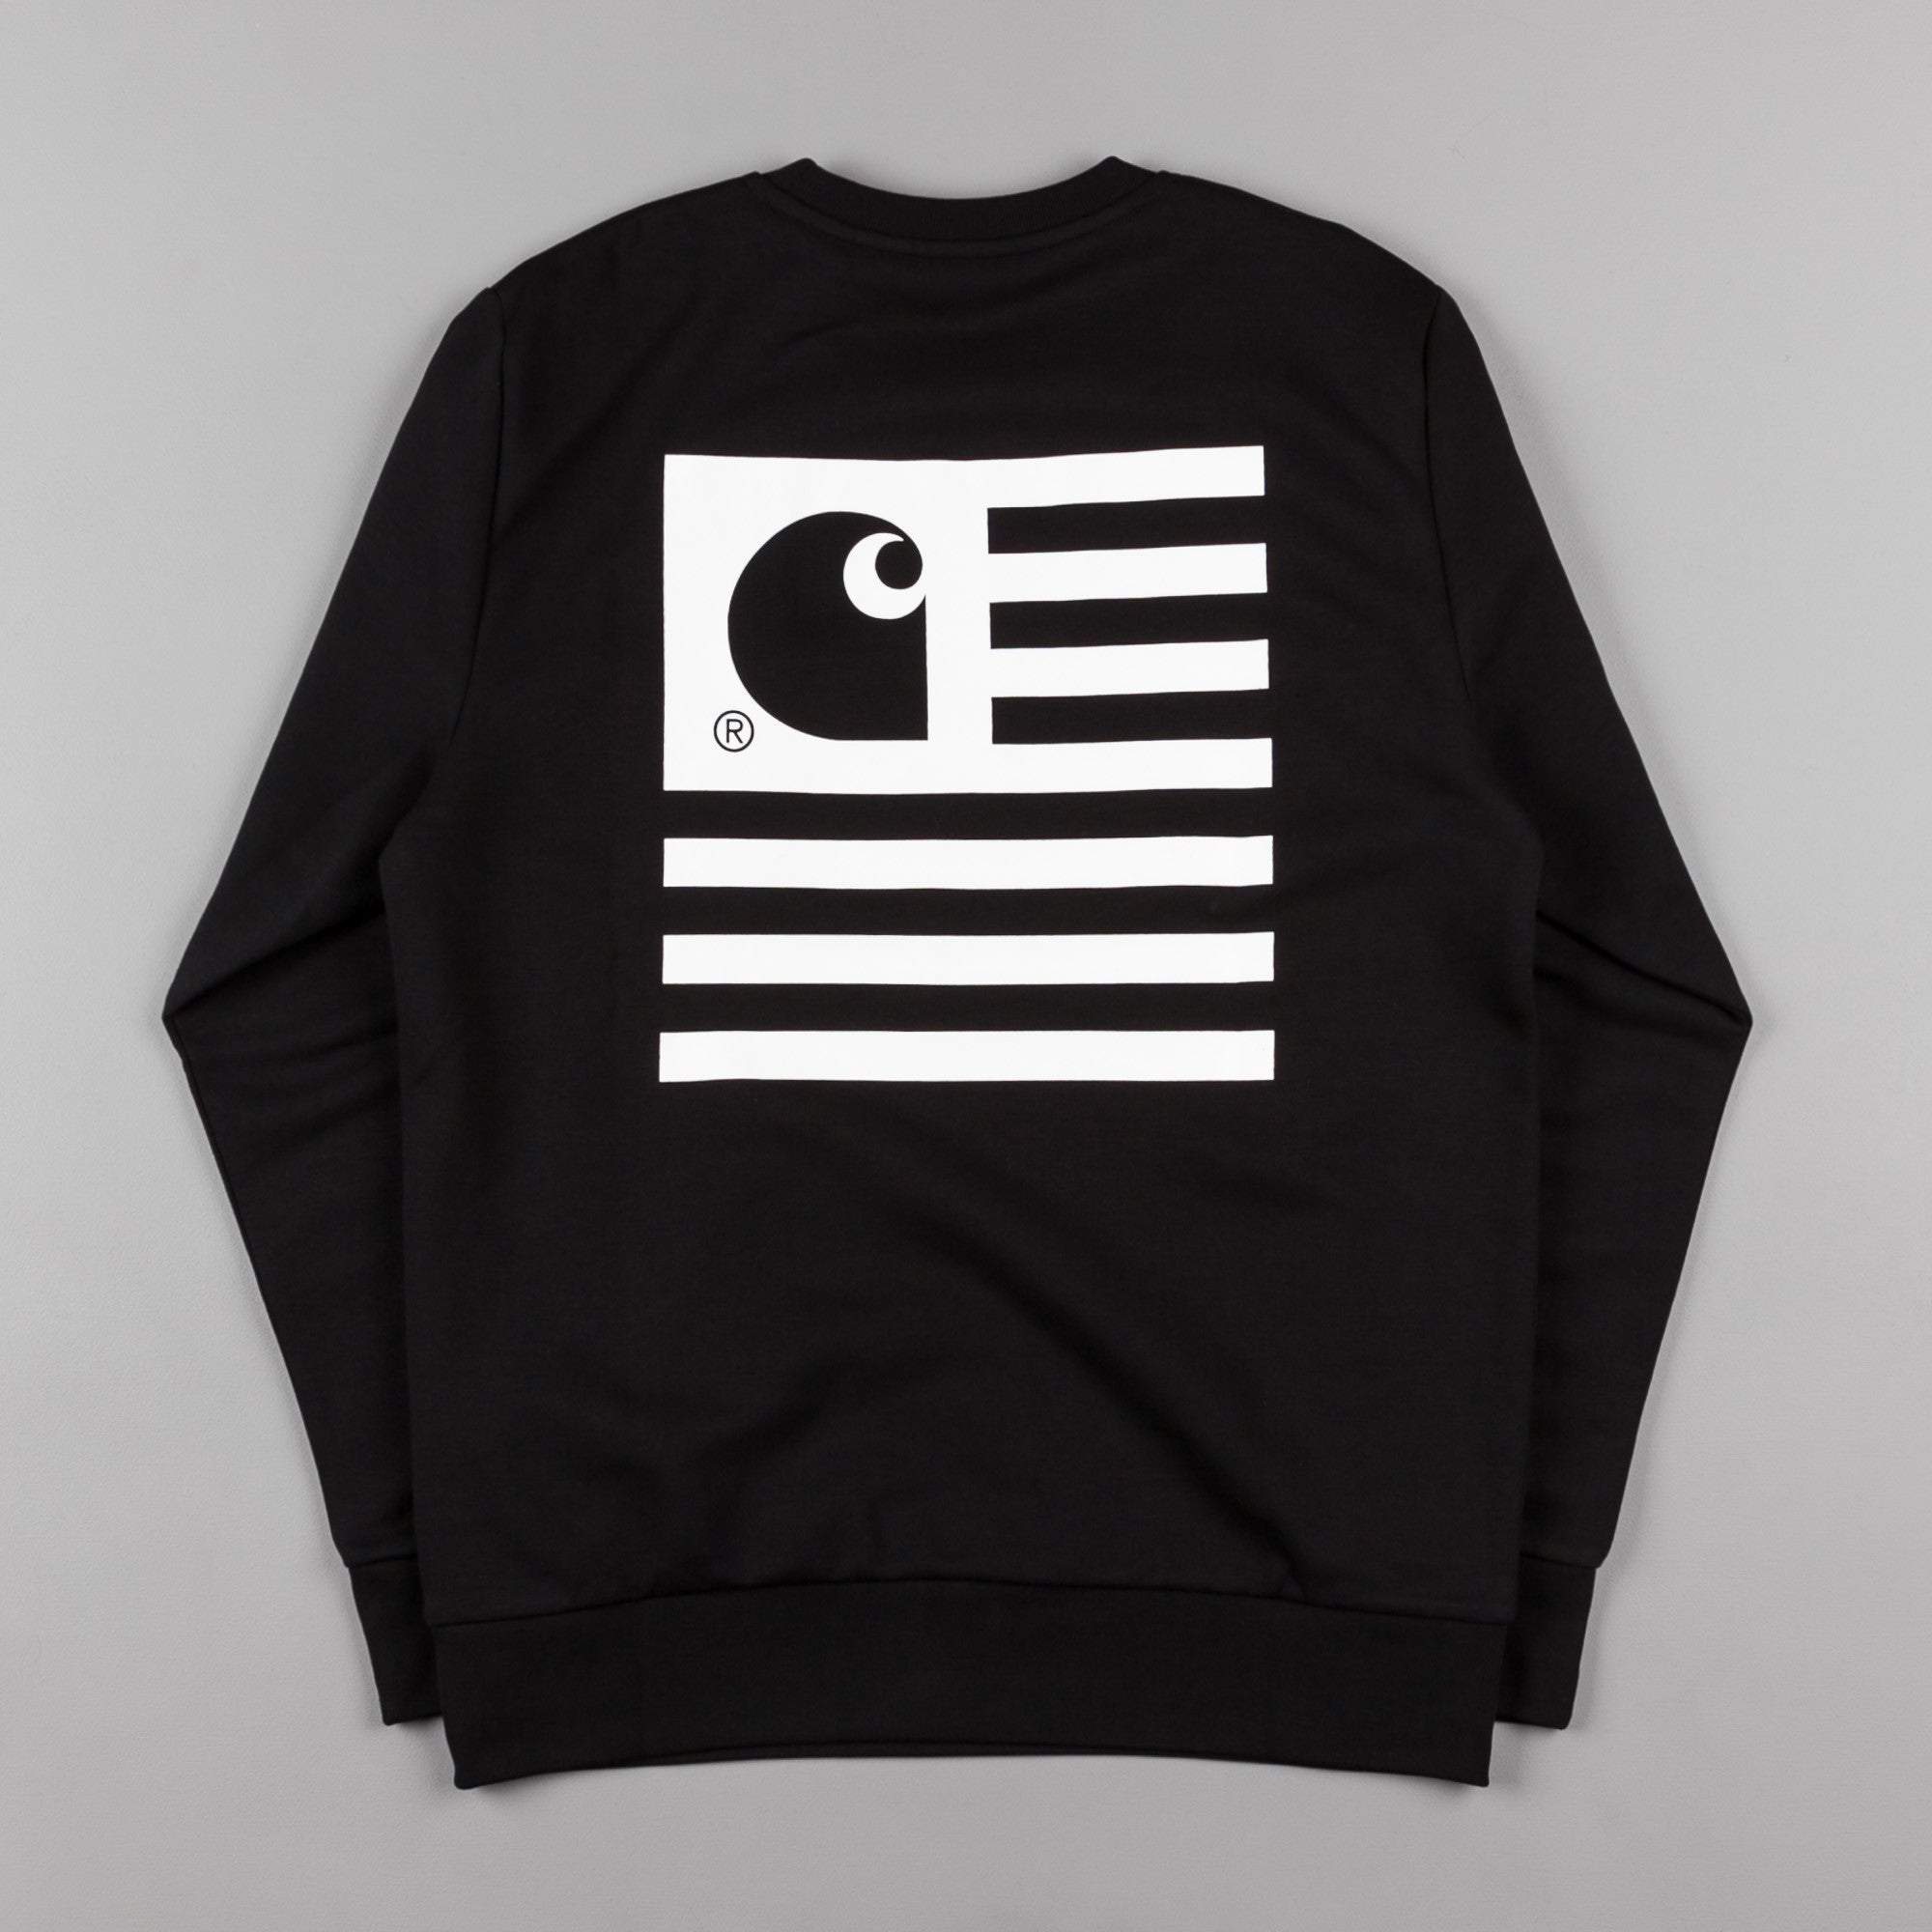 Carhartt State Flag Crew Neck Sweatshirt - Black / White